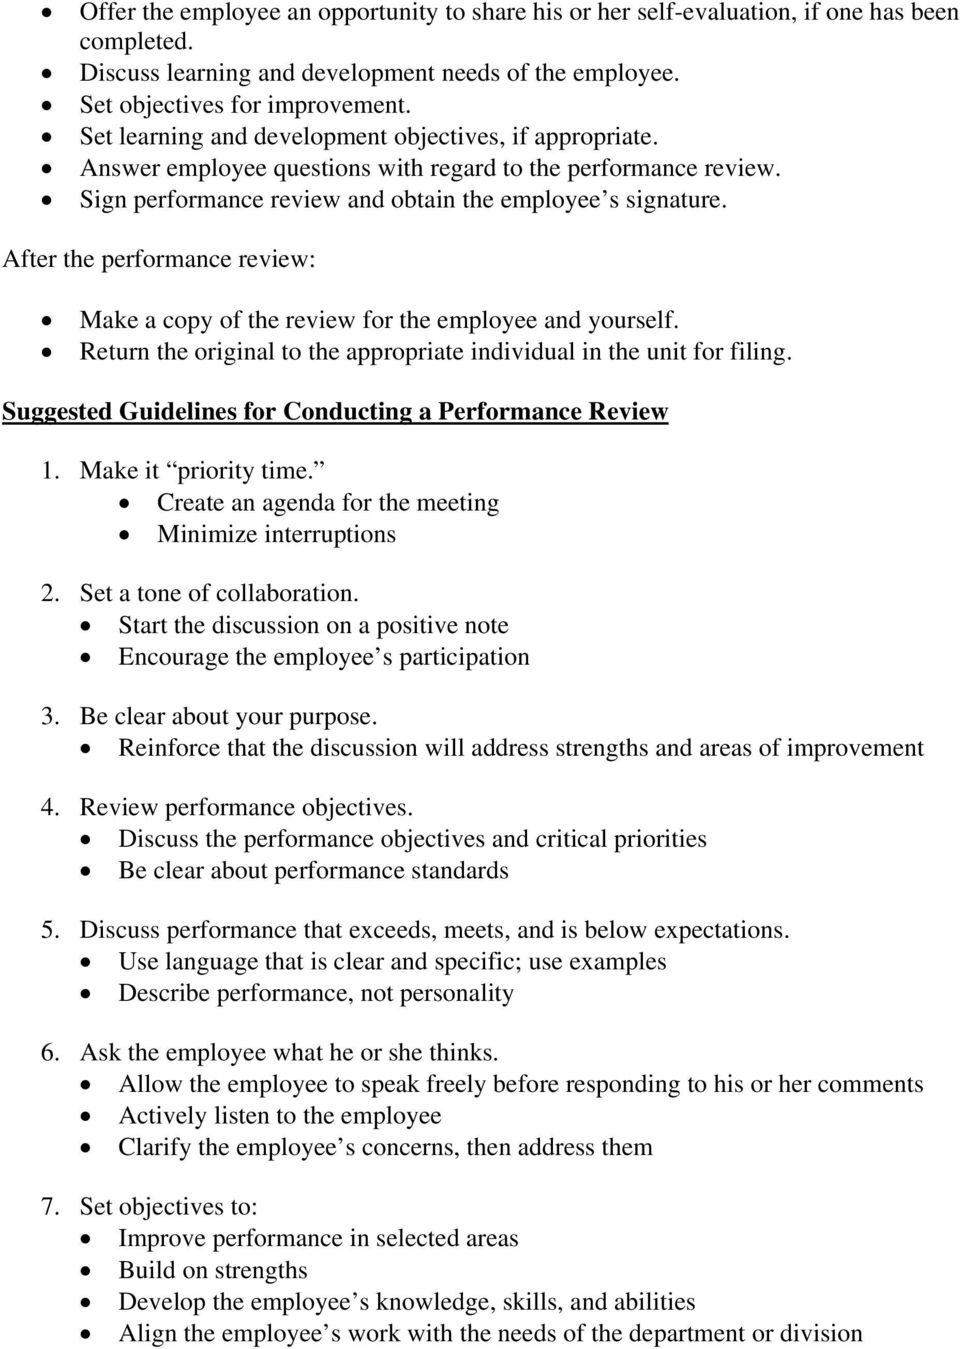 After the performance review: Make a copy of the review for the employee and yourself. Return the original to the appropriate individual in the unit for filing.